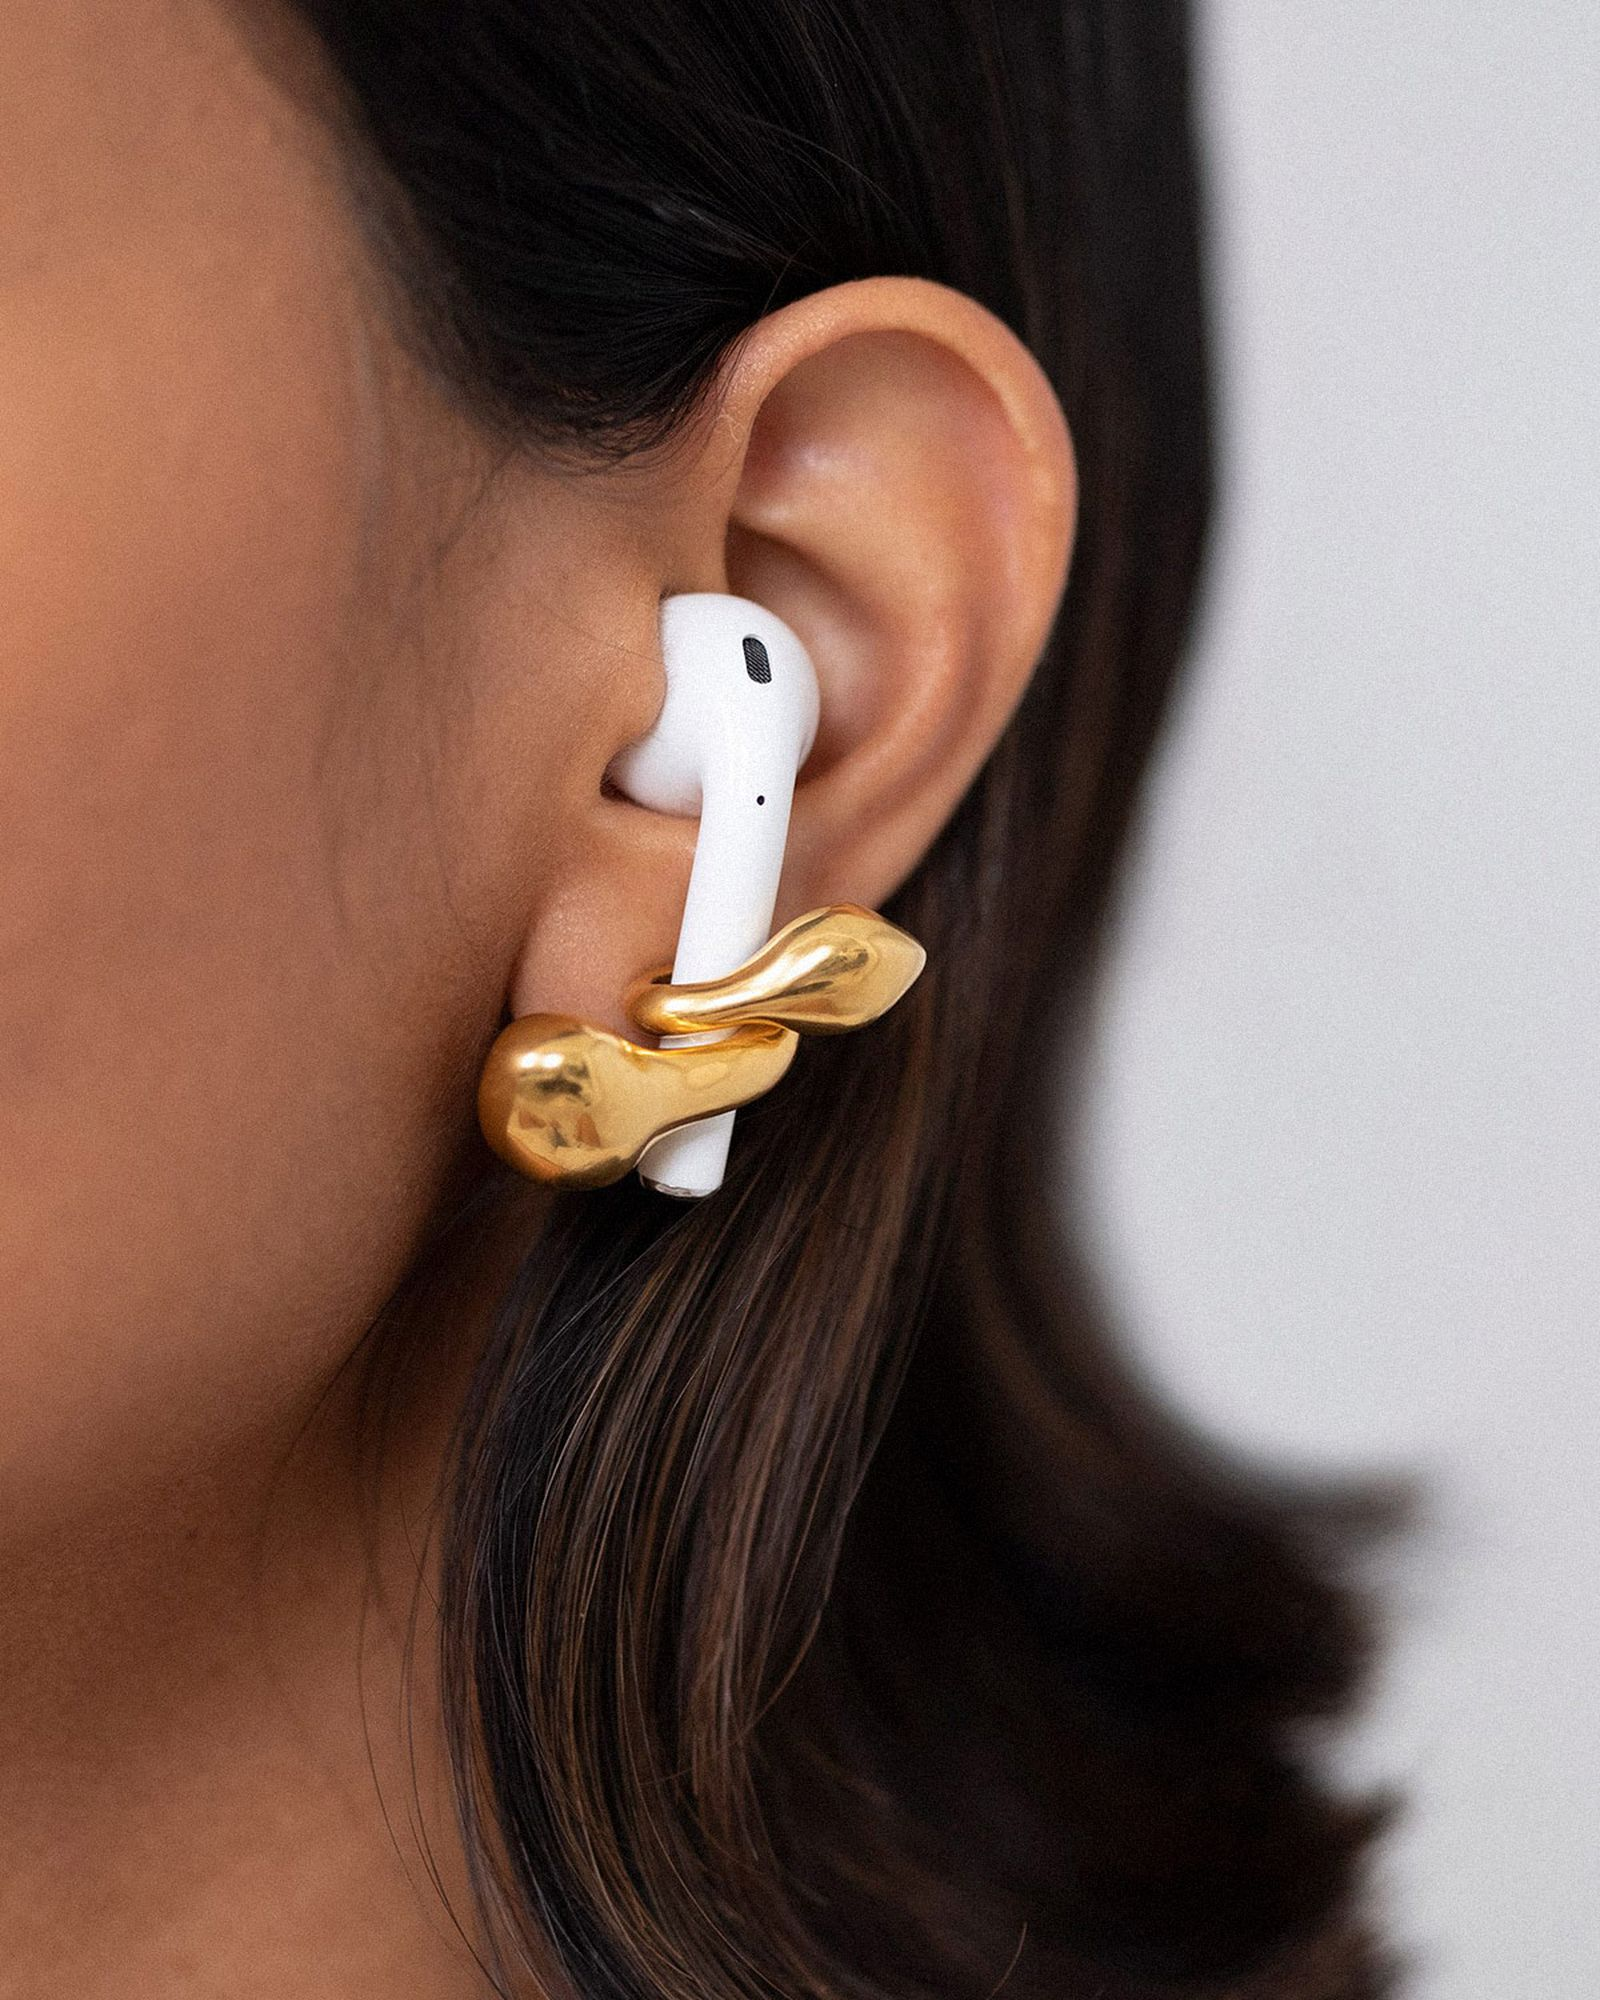 airpods-earring-main